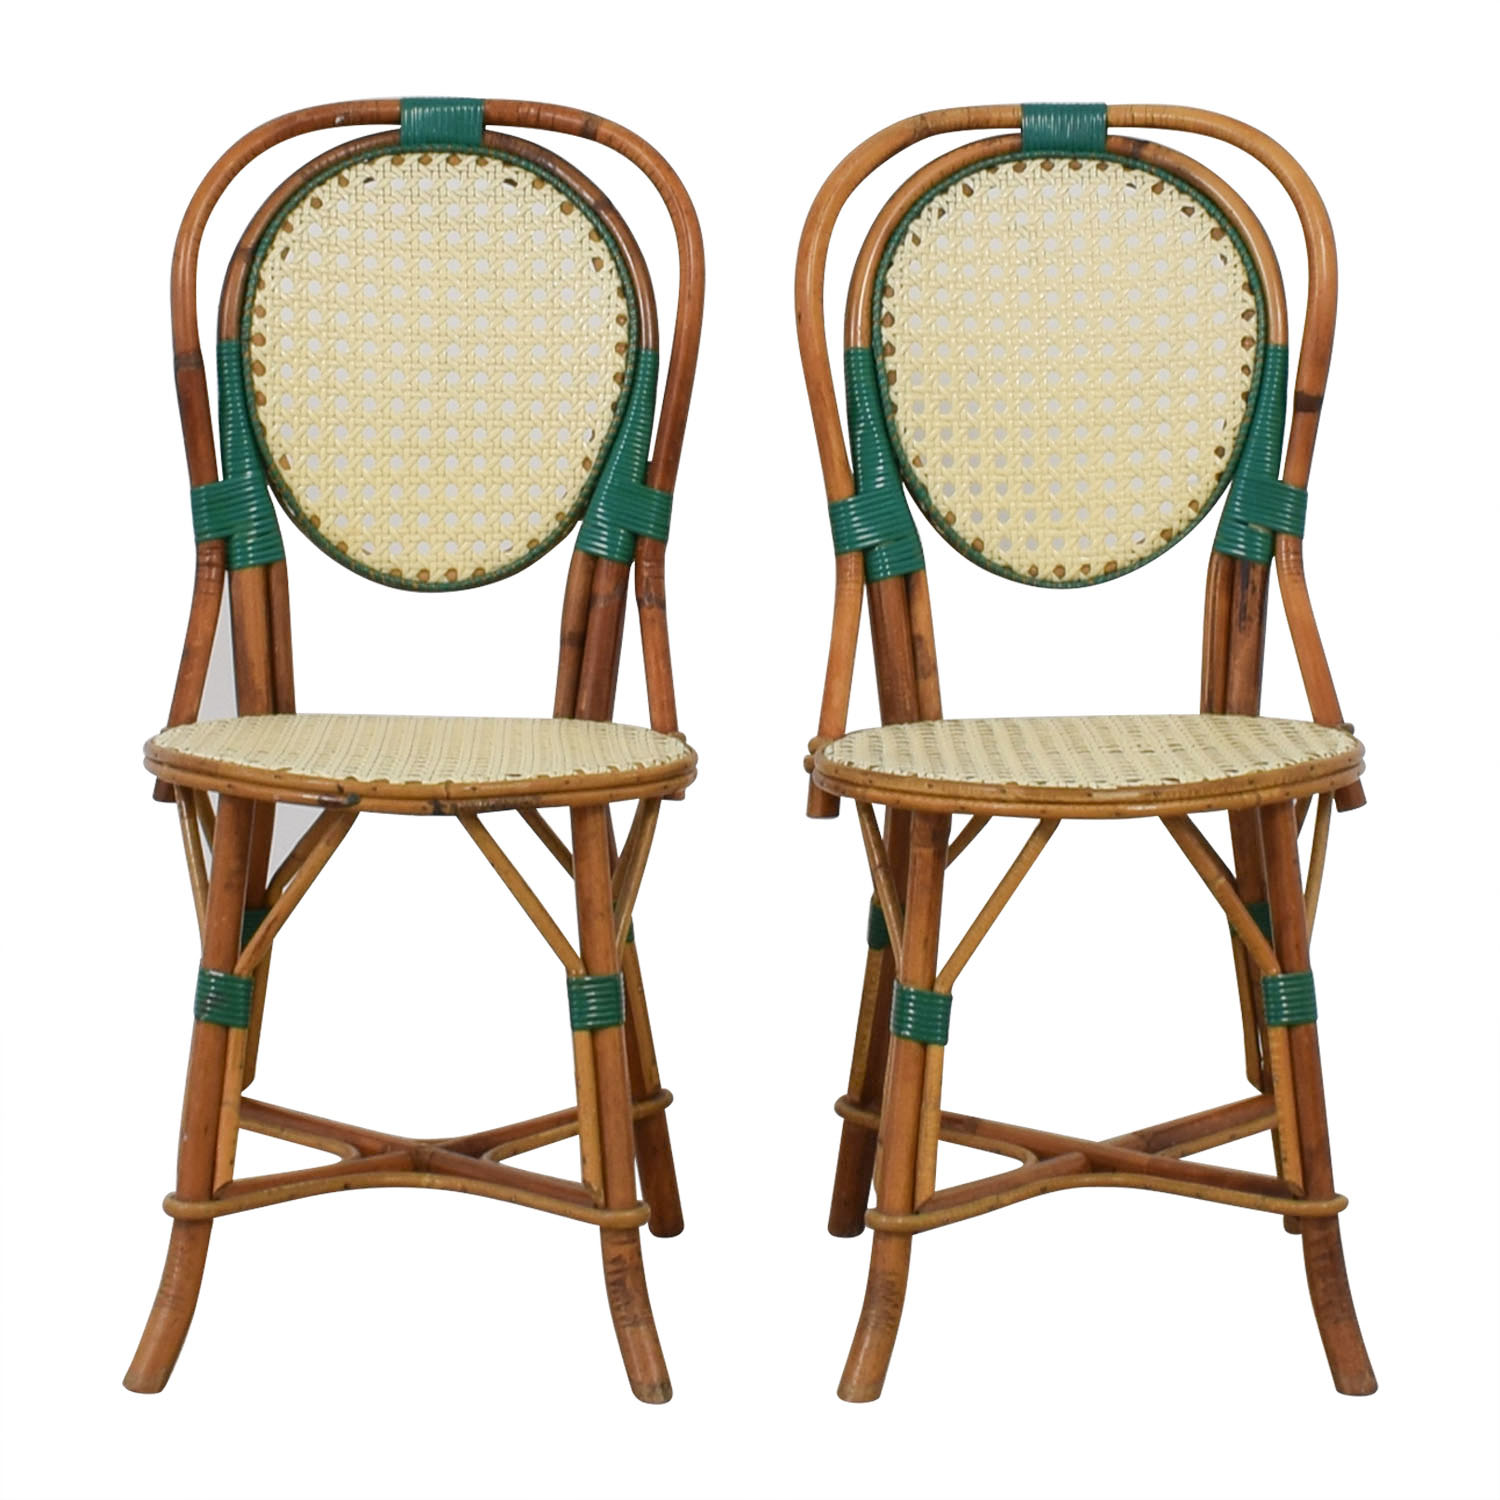 Genuine Vintage Cane French Bistro Chairs Nyc ...